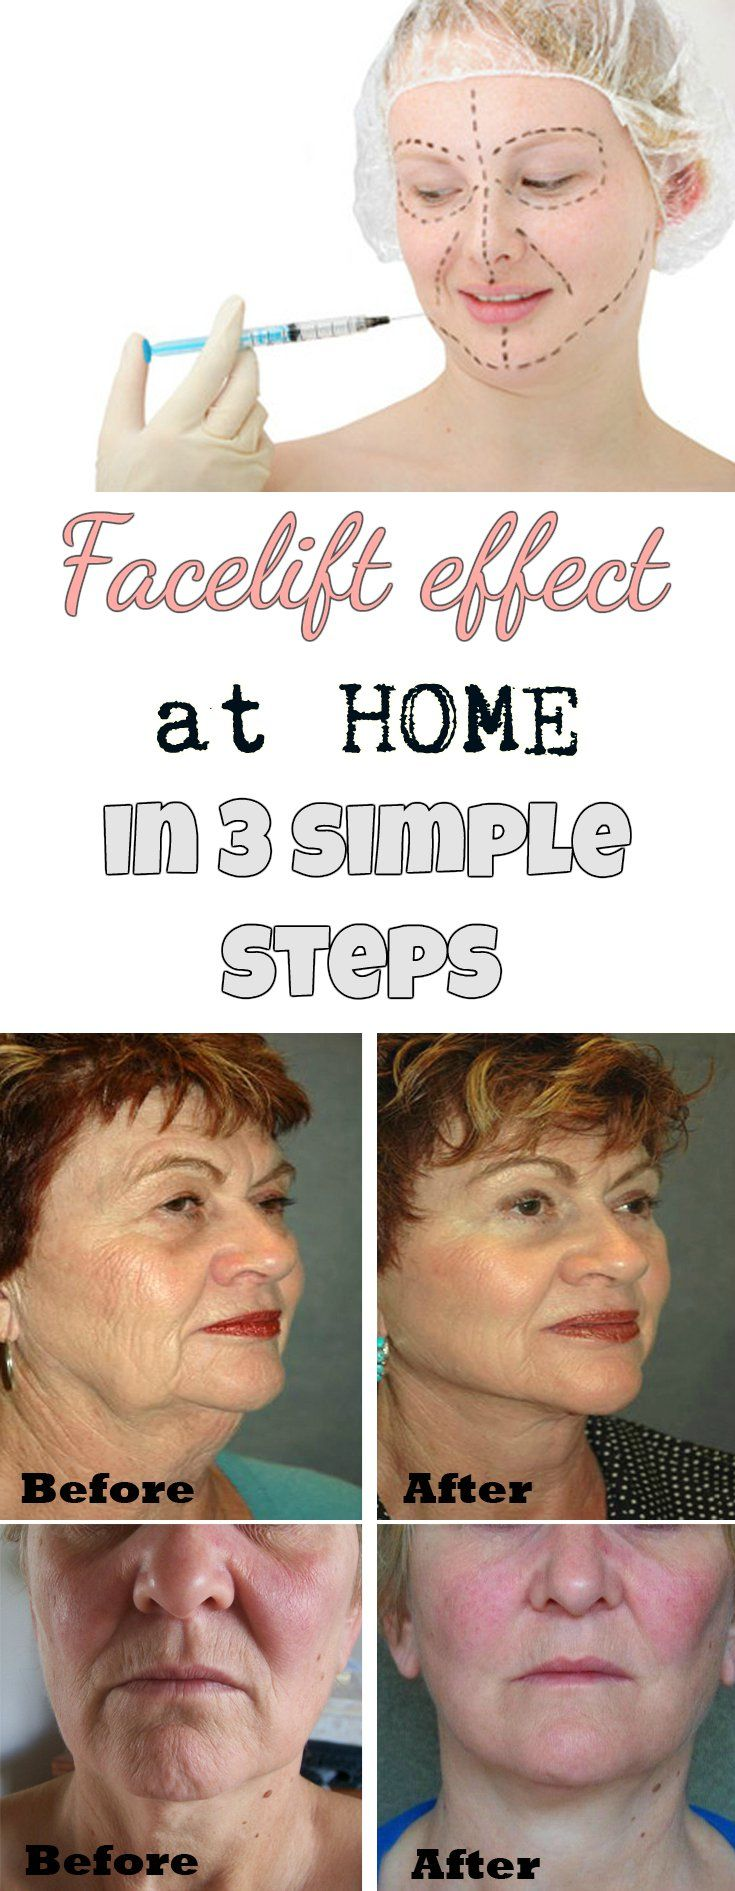 Facelift effect at home in 3 simple steps - BeautyTotal.org